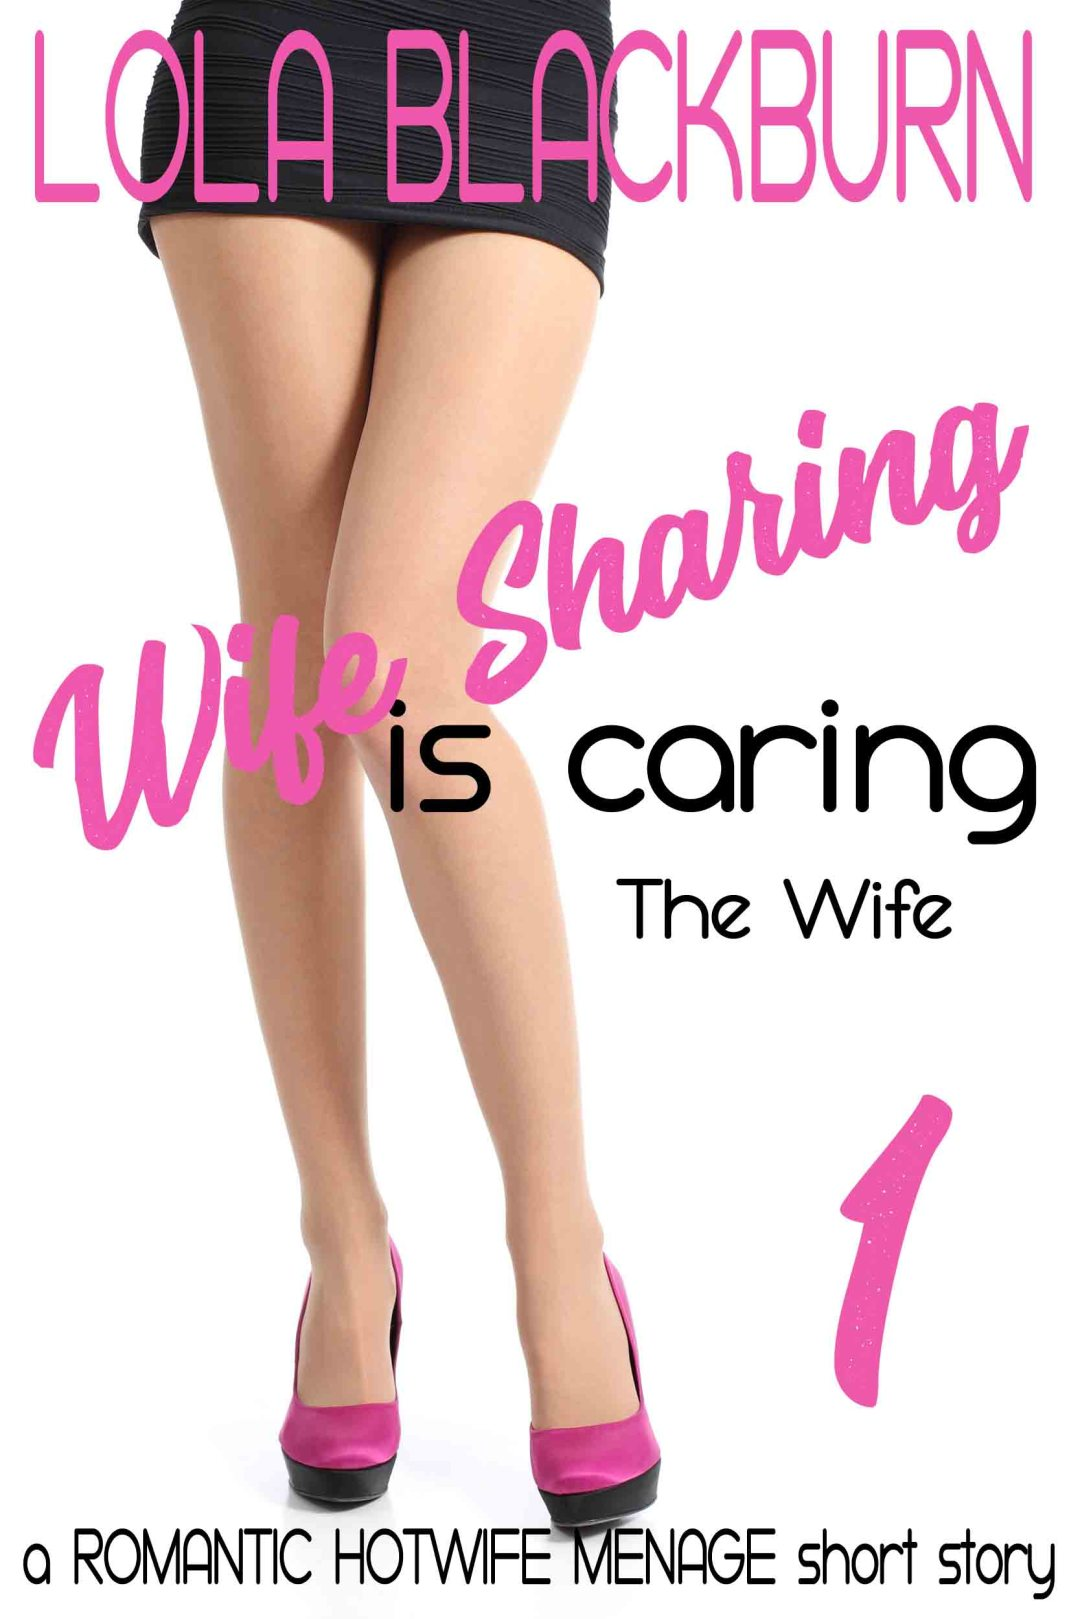 Wife Sharing is Caring: The Wife